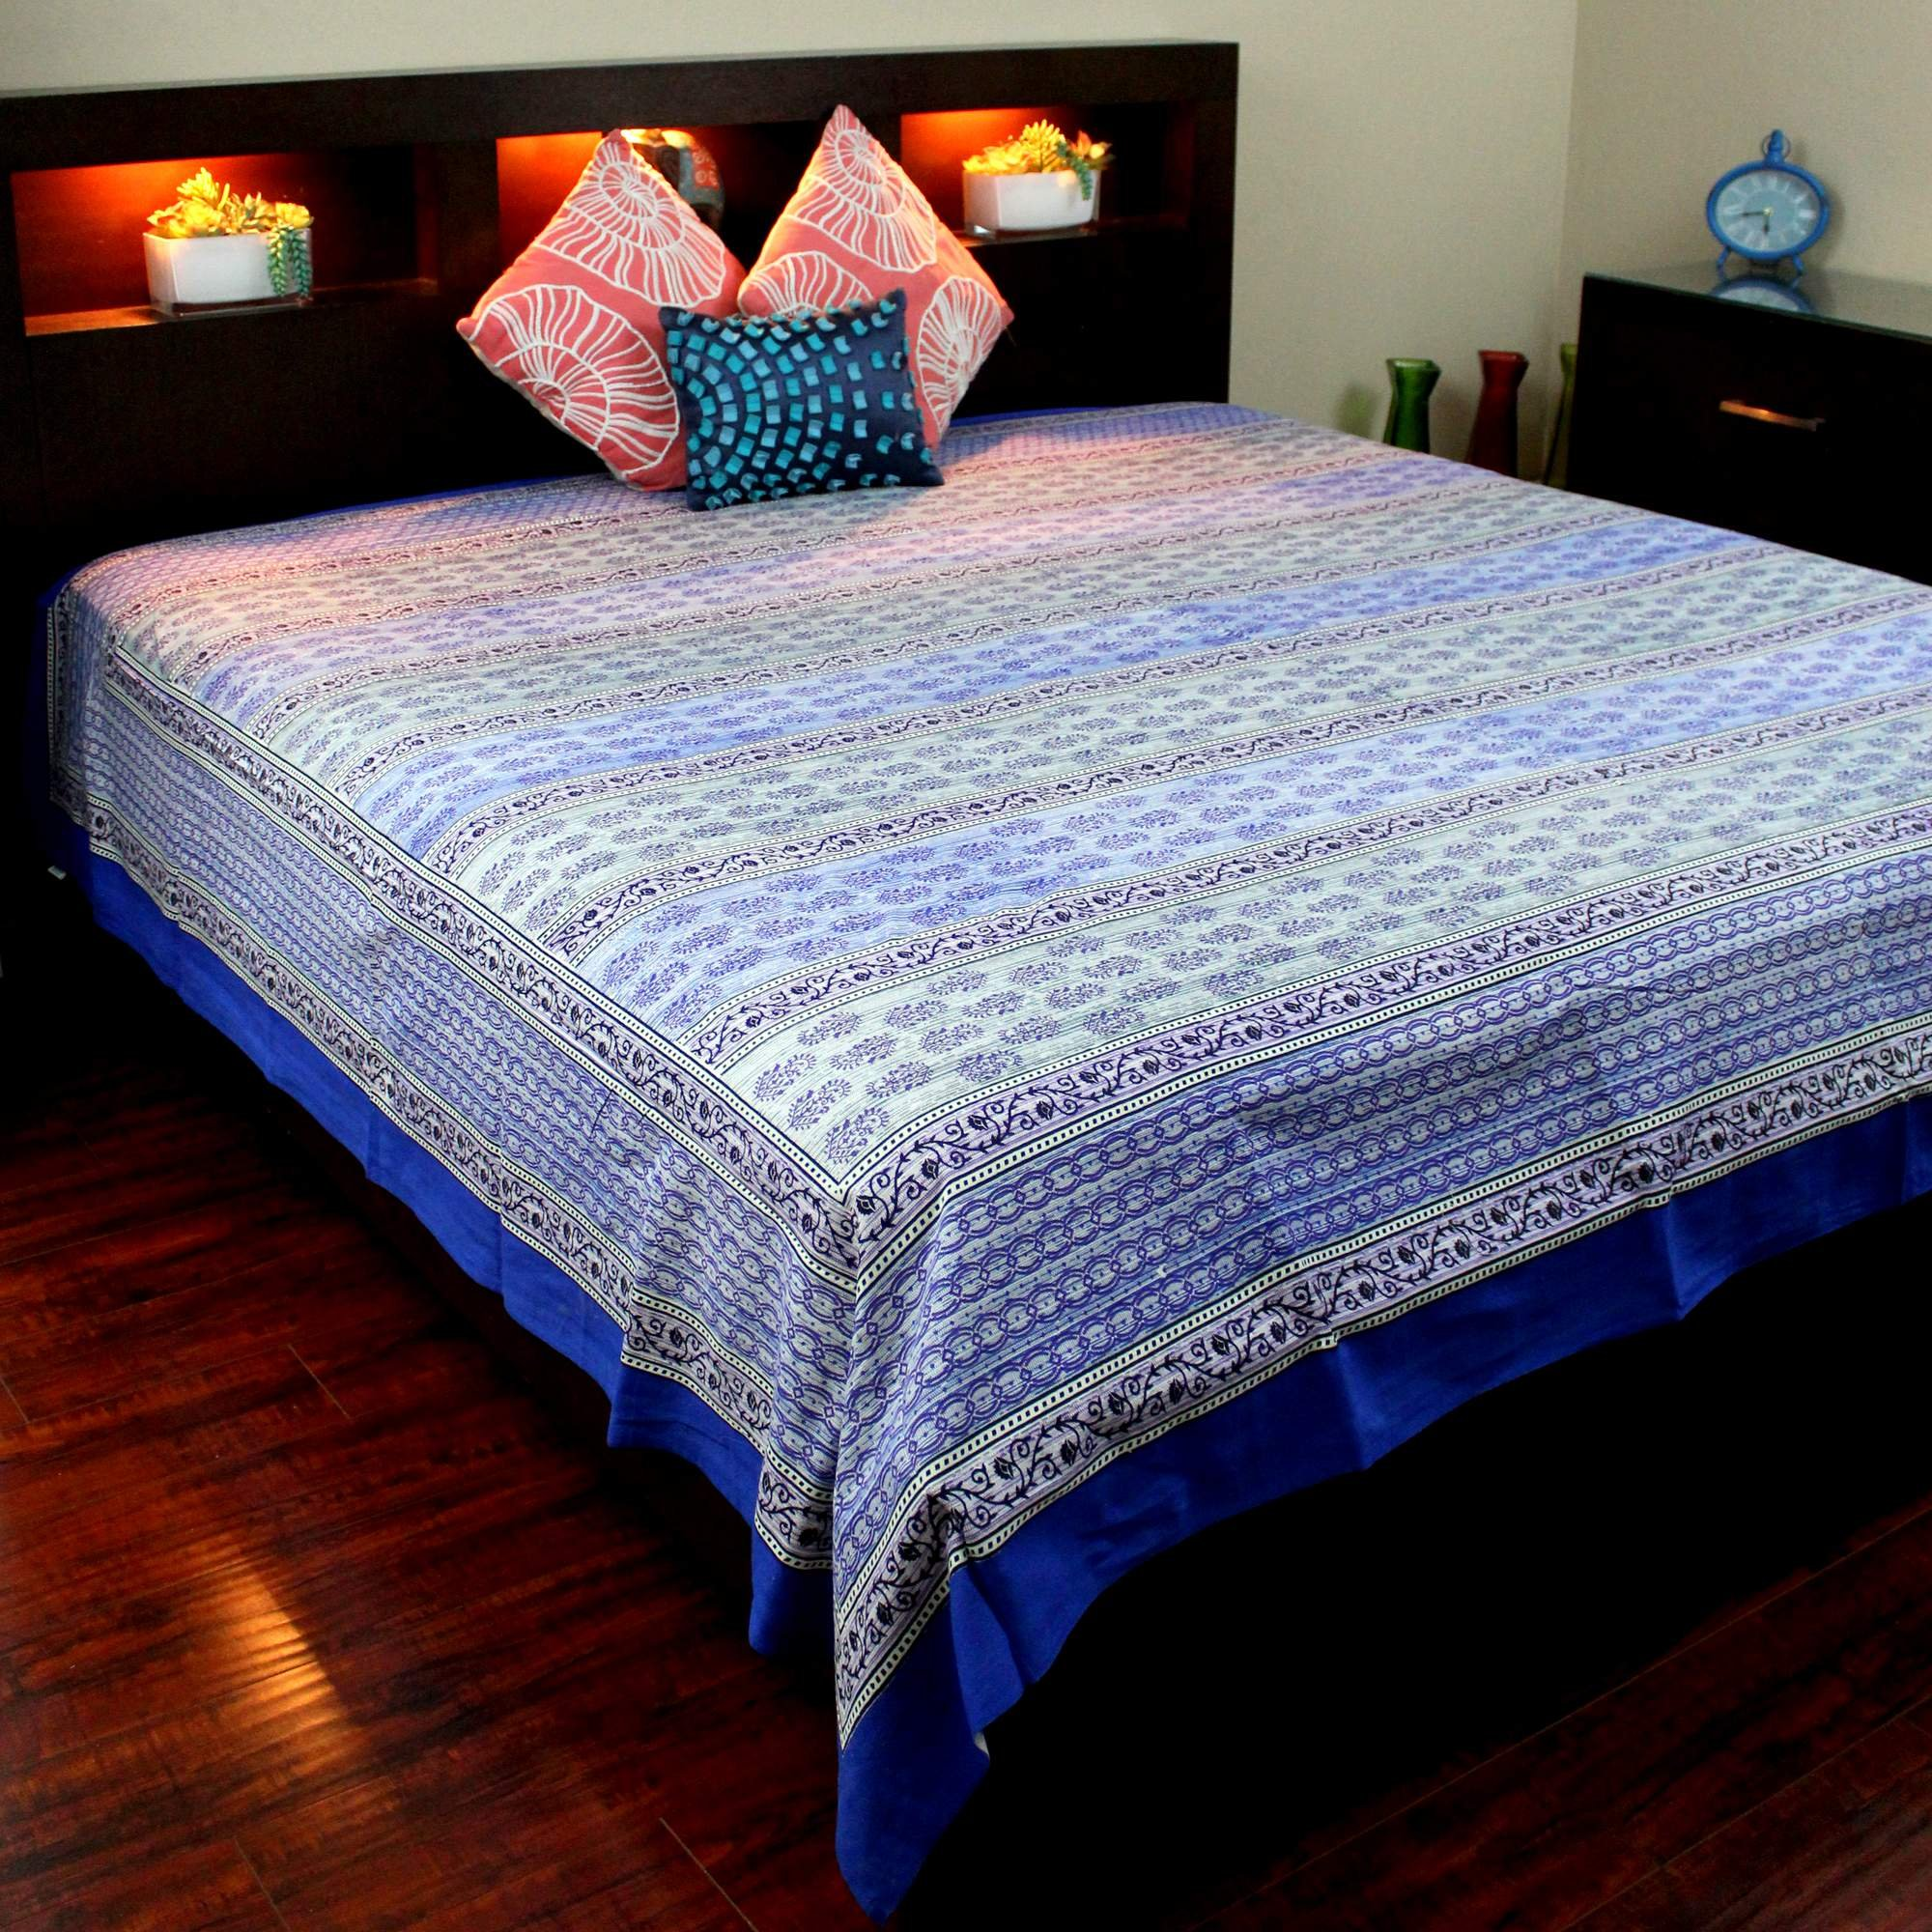 India Arts Handmade 100% Cotton Floral Buti Tapestry Tablecloth Bedspread Coverlet Beach Sheet Throw Blanket Blue Full 88x106